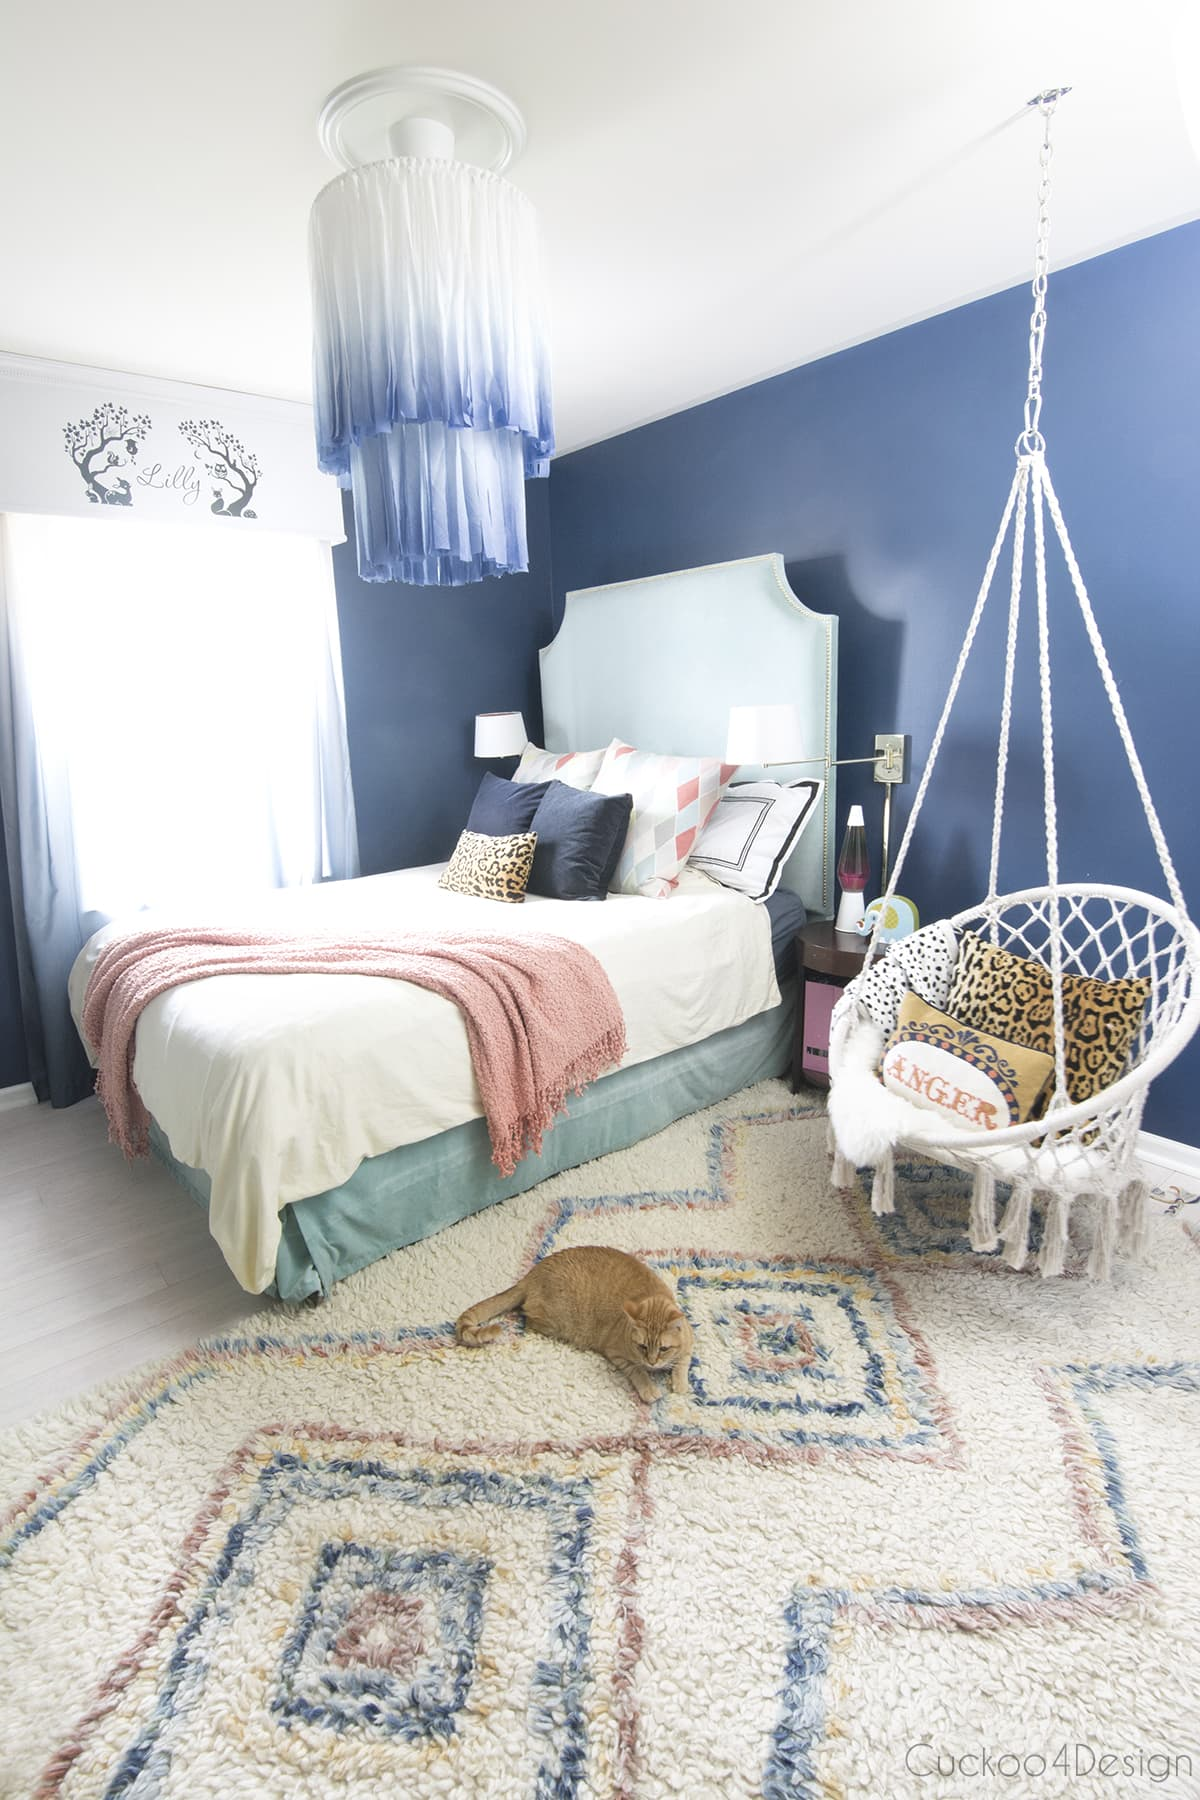 fabric dyed white and blue chandelier from Ikea